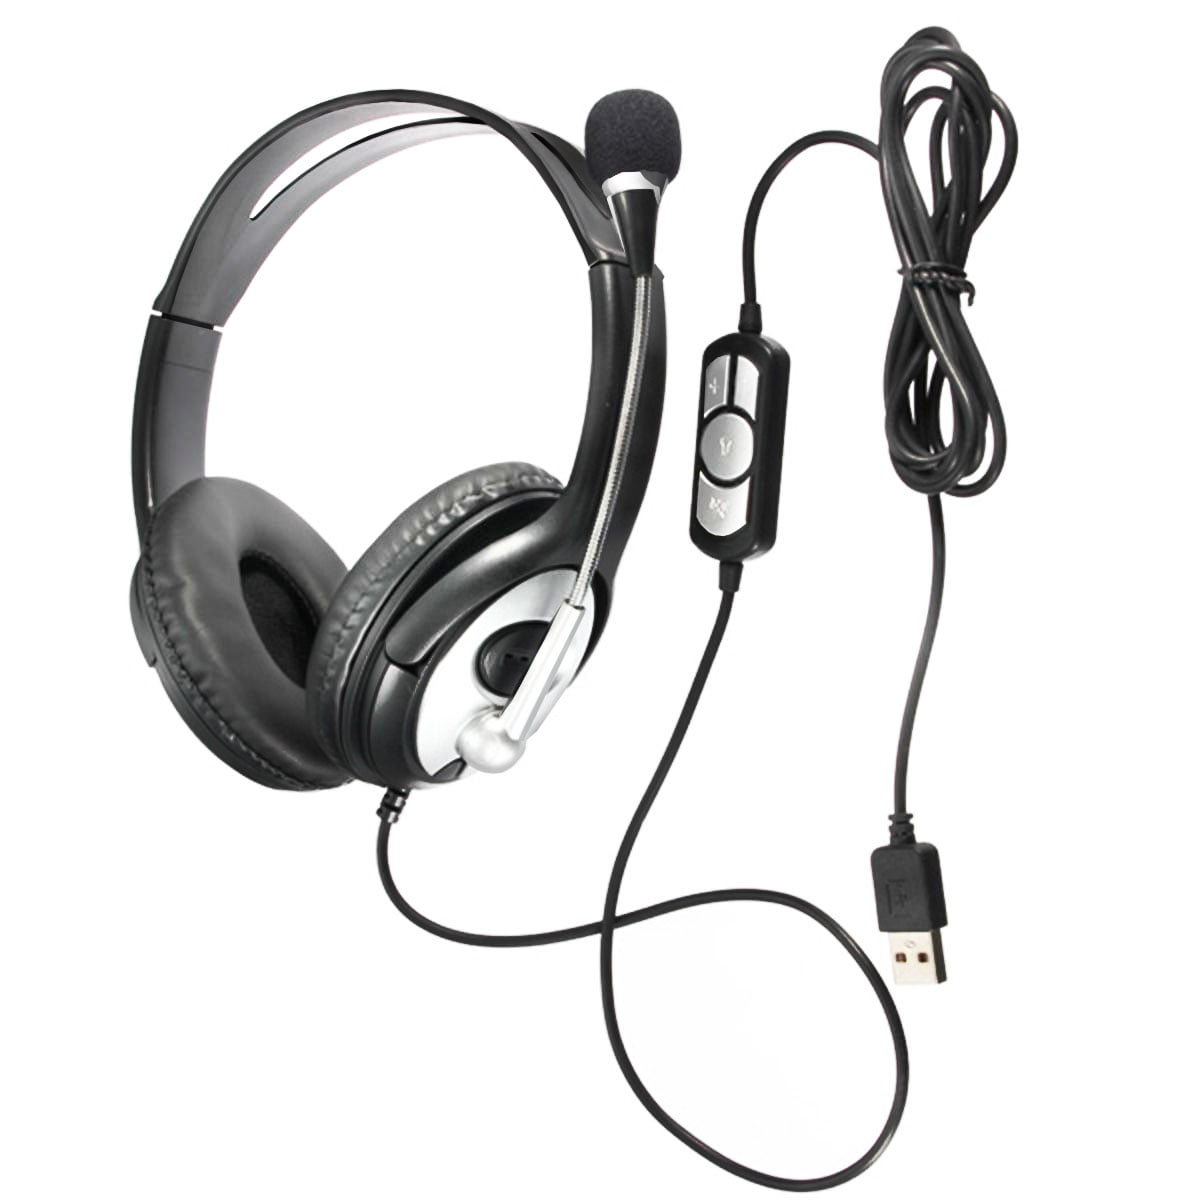 Voice Chat, Business Skype VOIP Headset in-line Control for Call Center Webinar Online Conference Gaming Headset// 3.5mm PC Headset Lightweight Computer Headphone with Microphone Noise Cancelling